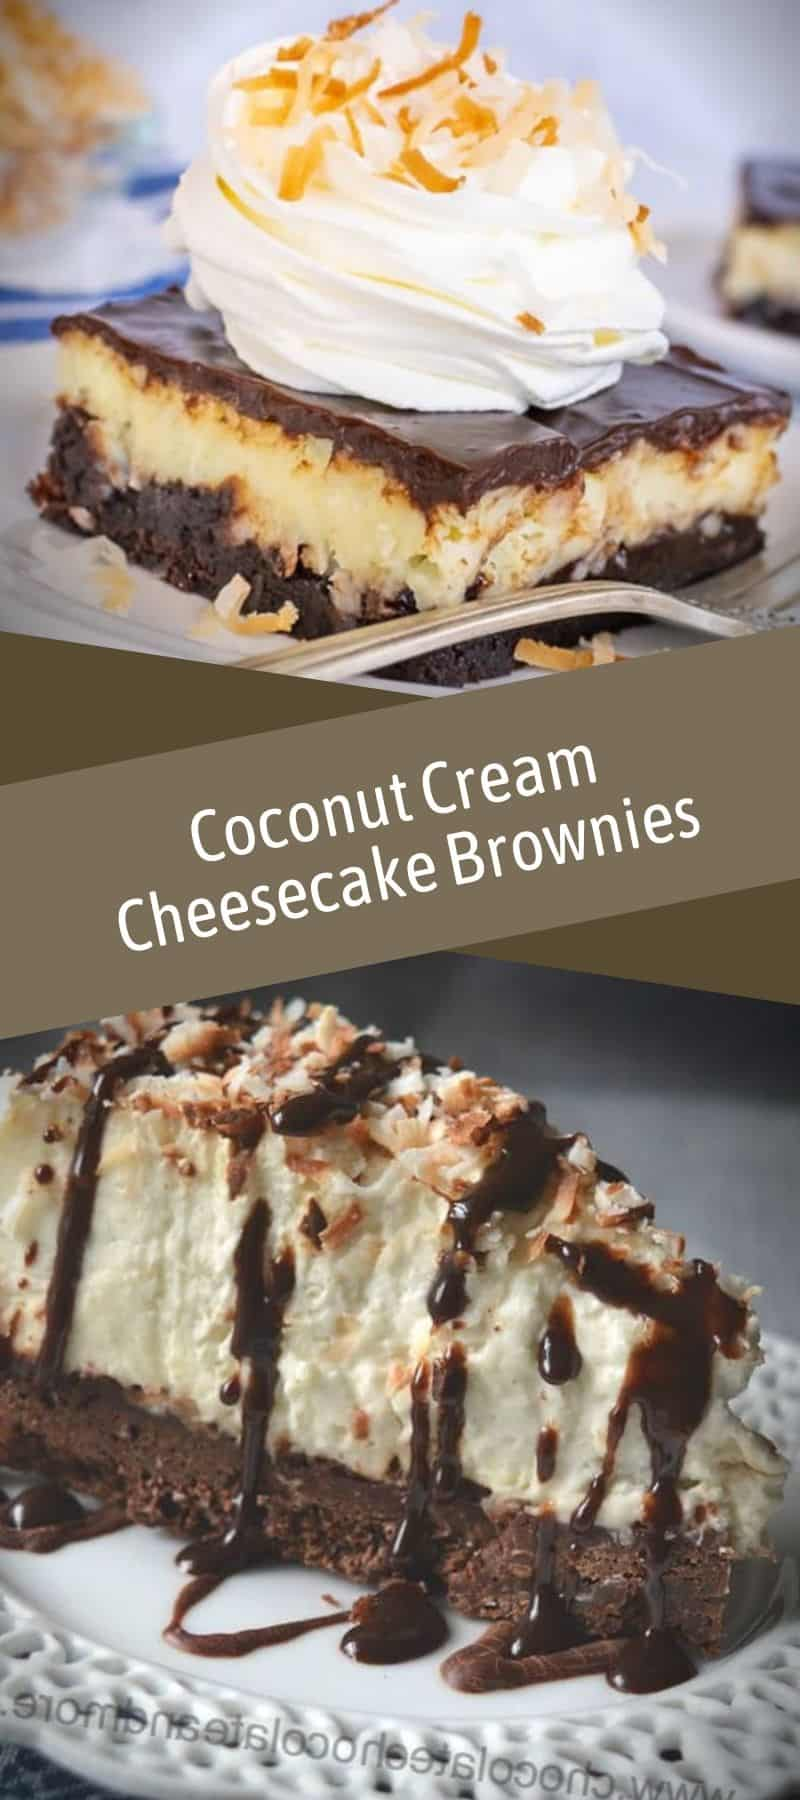 Coconut Cream Cheesecake Brownies Recipe 3